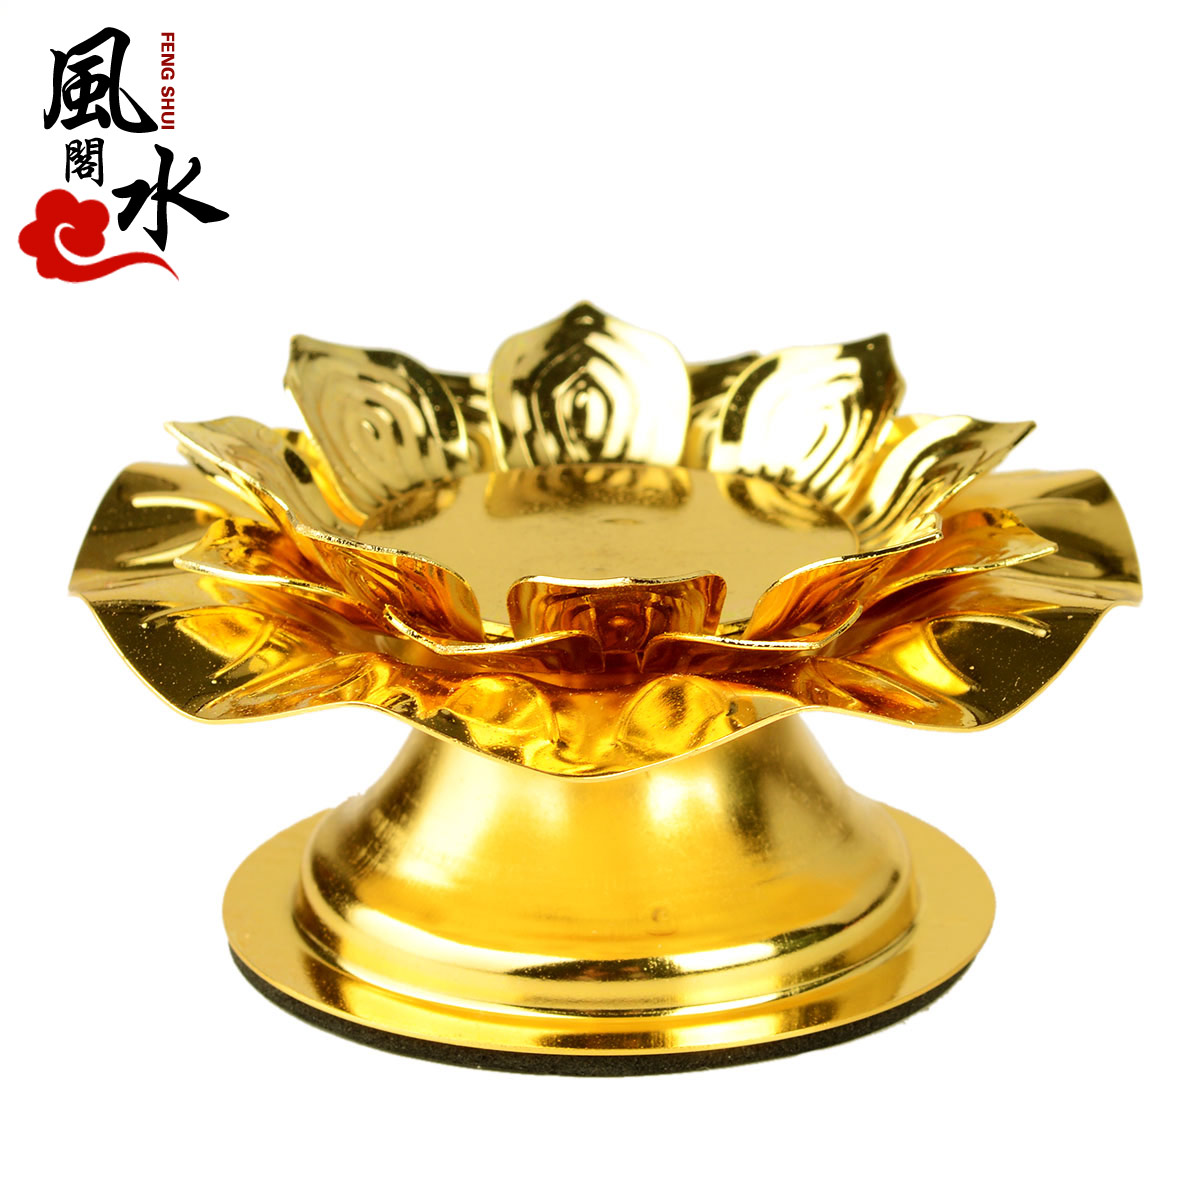 Feng shui court opening gold hollow lotus butter lamps lotus lamp holder butter lamps candle holder candlestick candlestick alloy candlestick